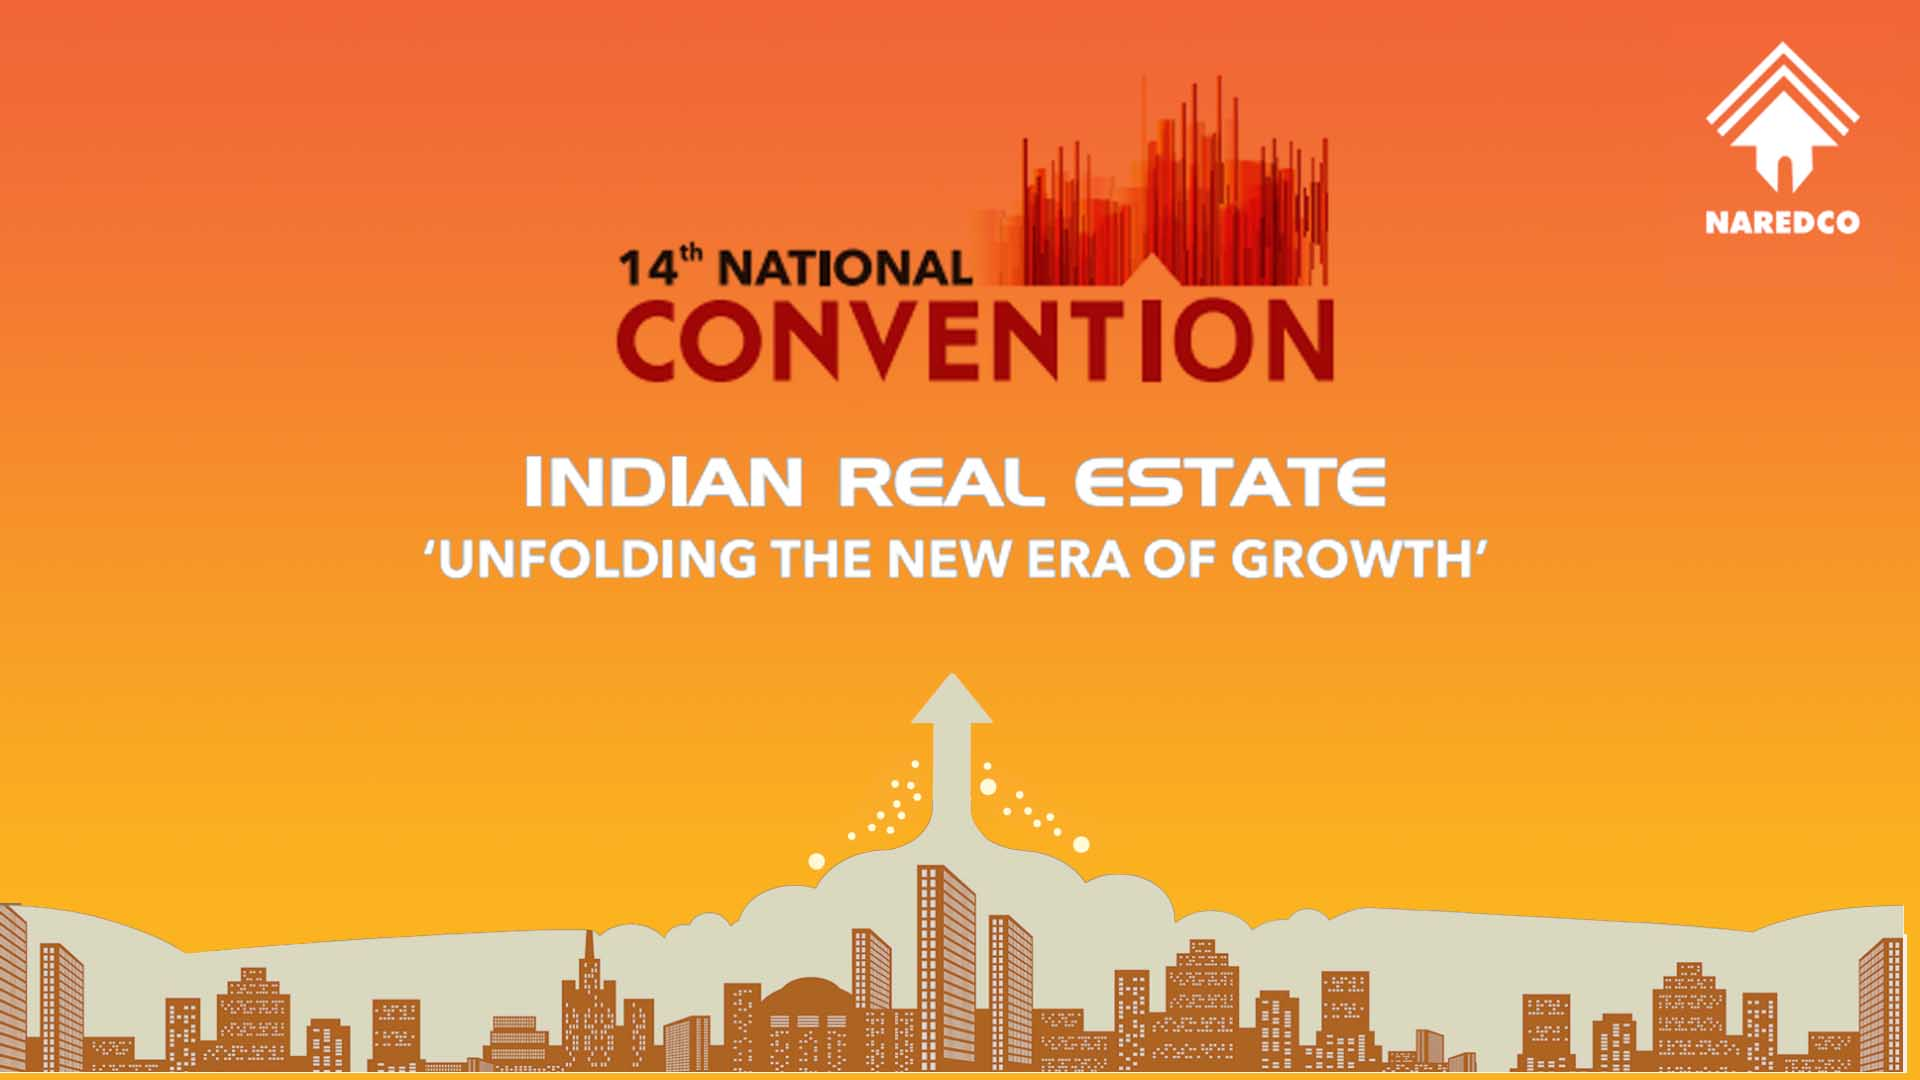 NAREDCO Convention To Be Held Later This Month With Focus On Affordable Housing